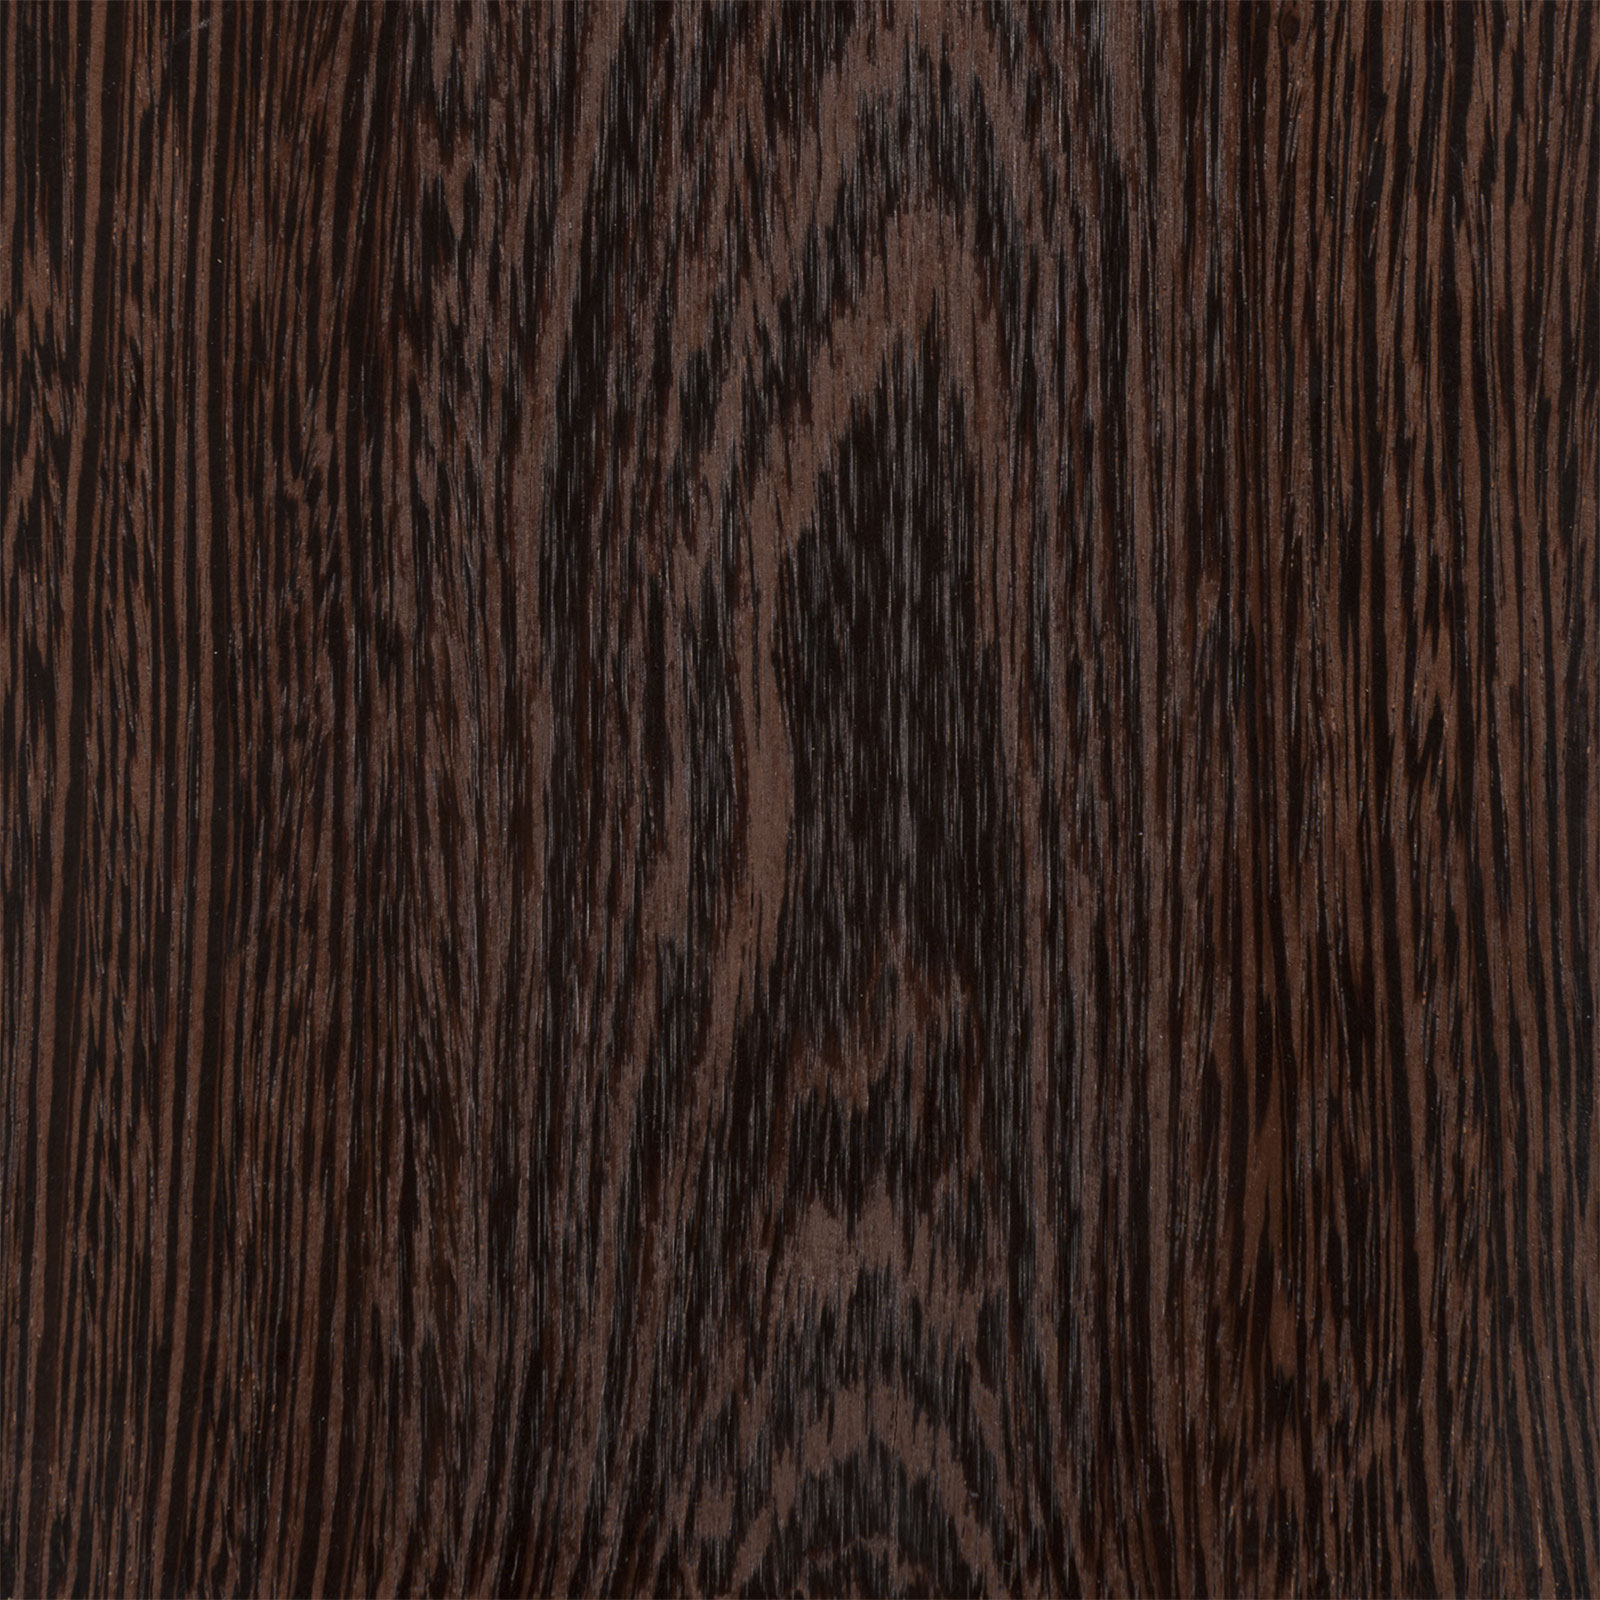 Red Oak Plywood further Red Mahogany Wood Floor together with Hardwood Lumber furthermore Plywood together with Wood Types. on birch hardwood